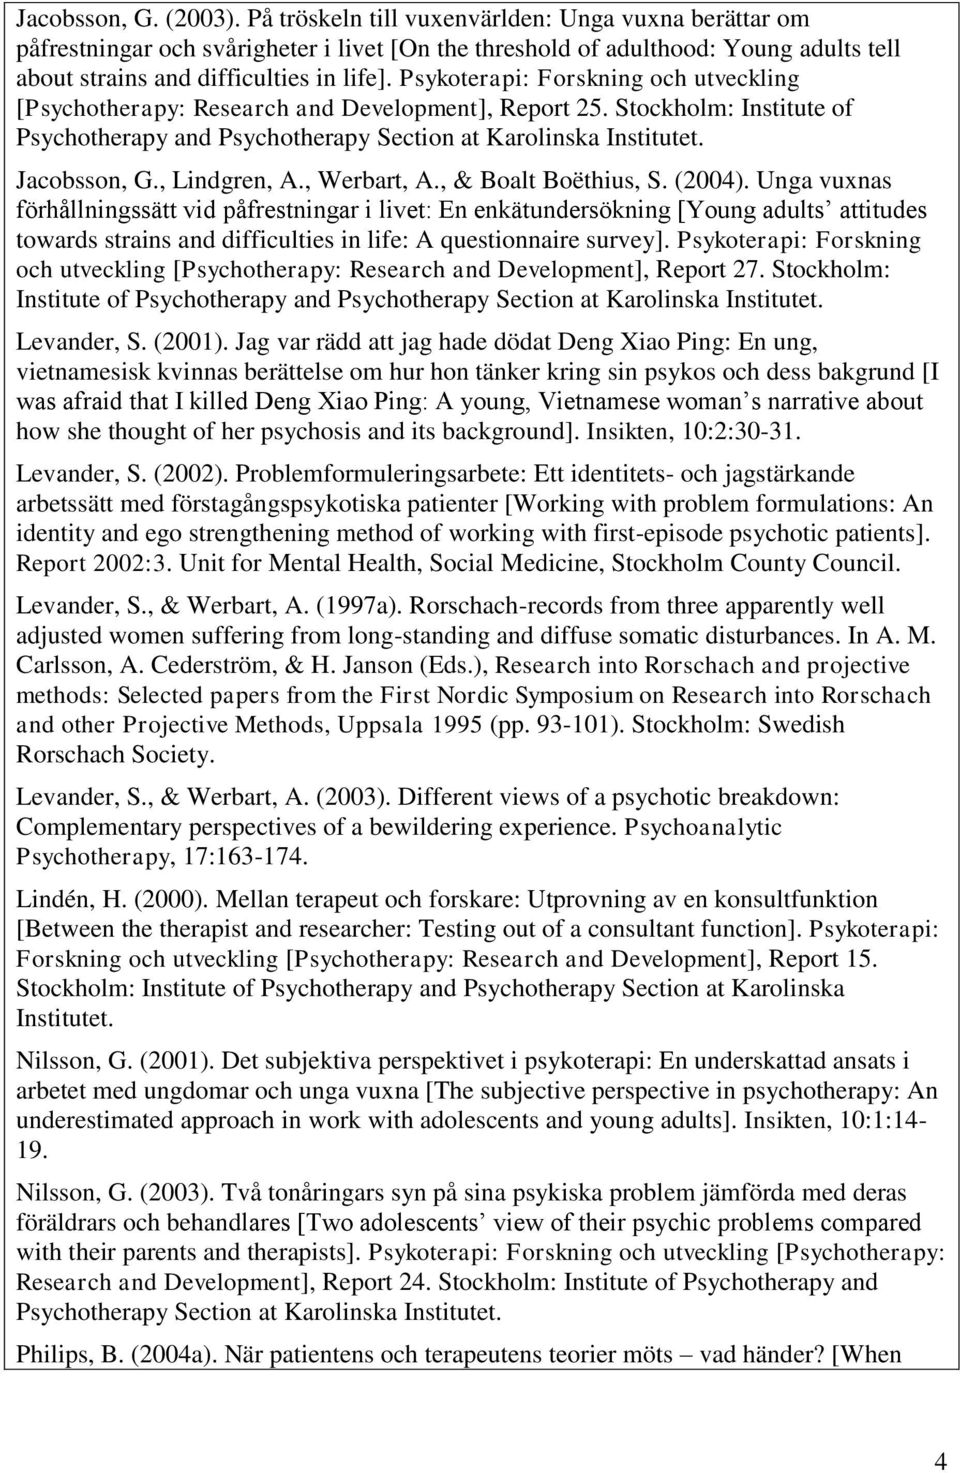 Psykoterapi: Forskning och utveckling [Psychotherapy: Research and Development], Report 25. Stockholm: Institute of Psychotherapy and Psychotherapy Section at Karolinska Institutet. Jacobsson, G.